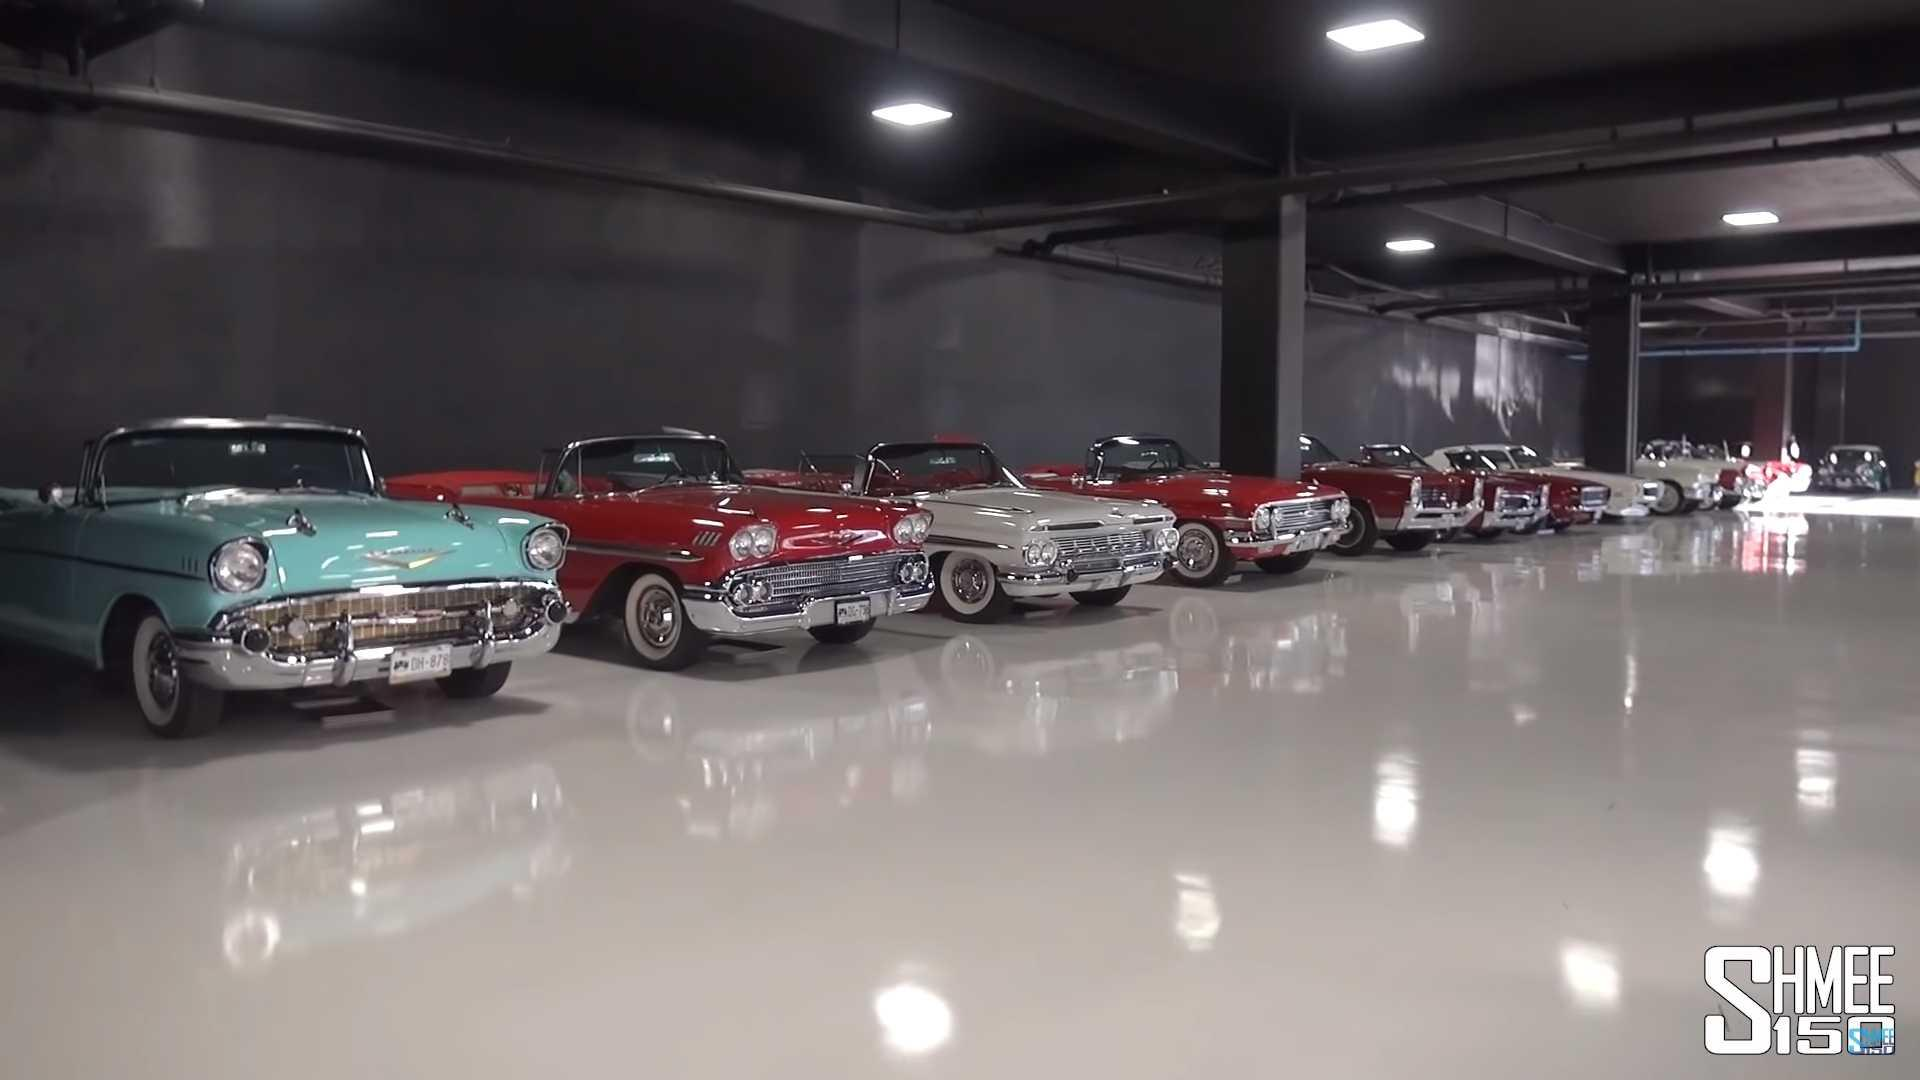 Immaculate Car Collection In Mexico Is Eclectic And Awesome